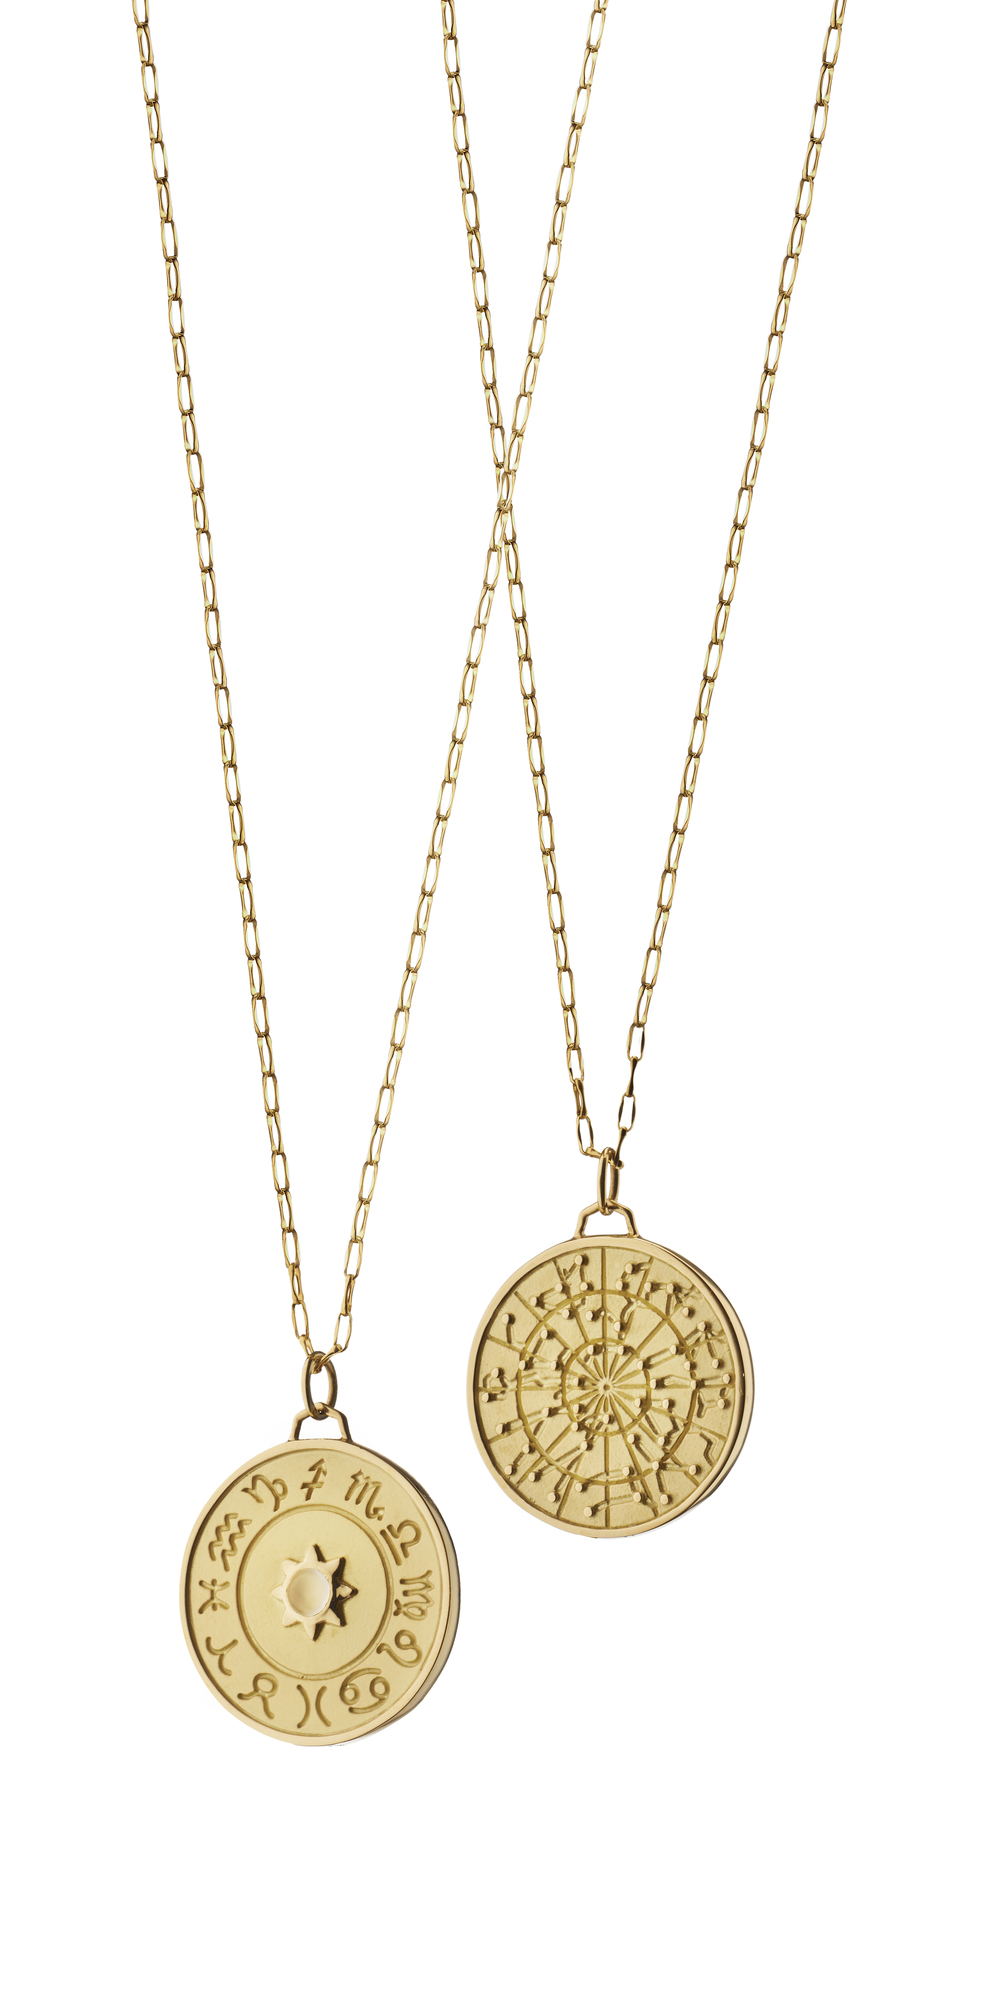 More newness -- Zodiac pendants in 18k yellow gold.